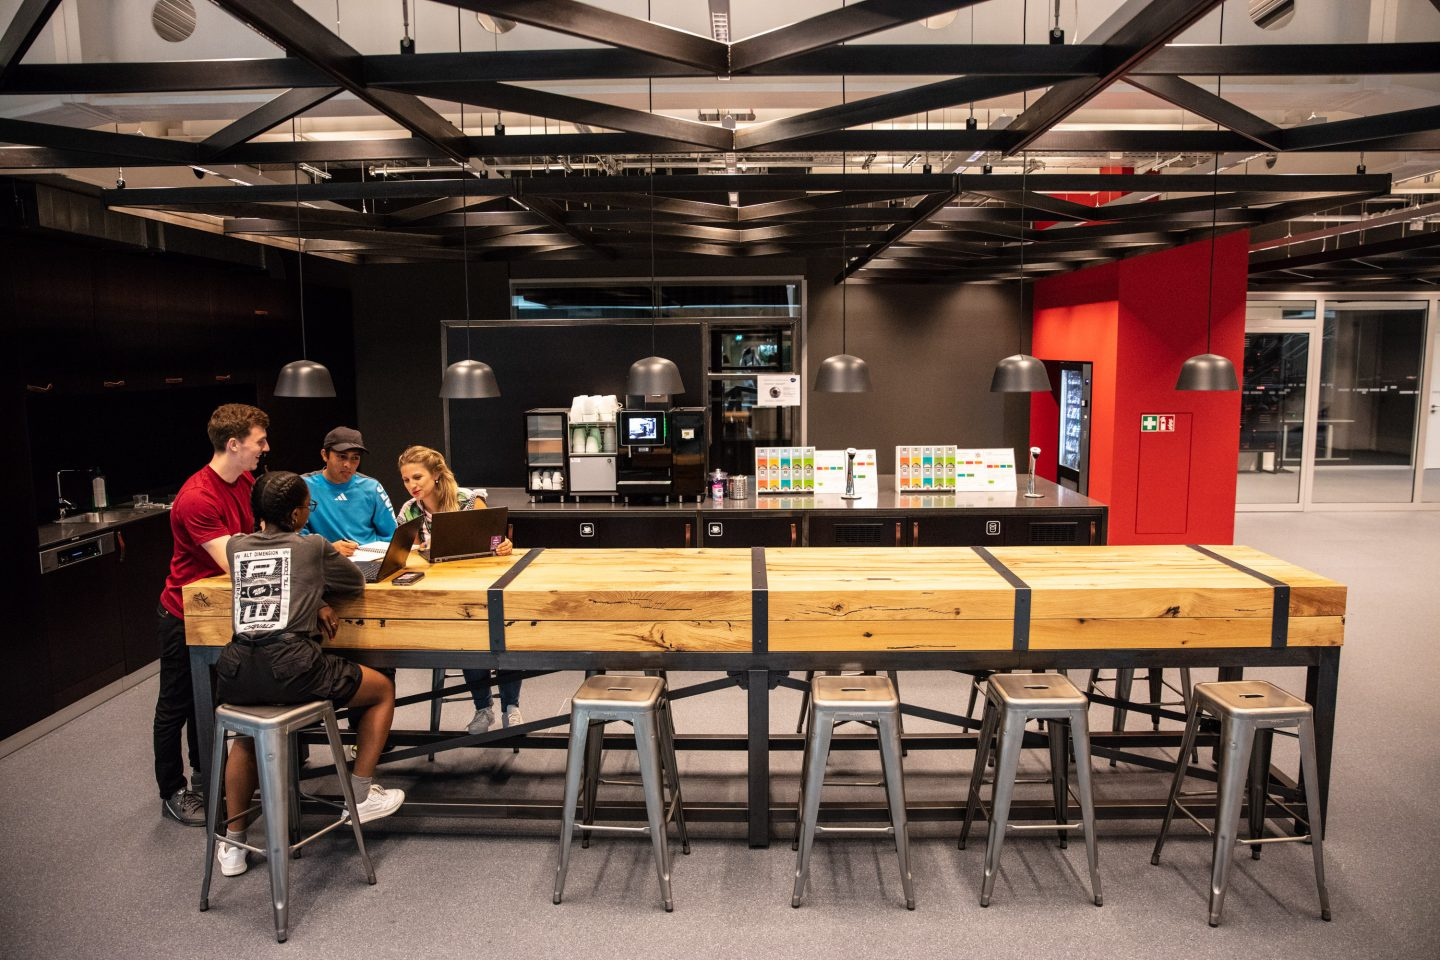 kitchen hub at adidas' Arena